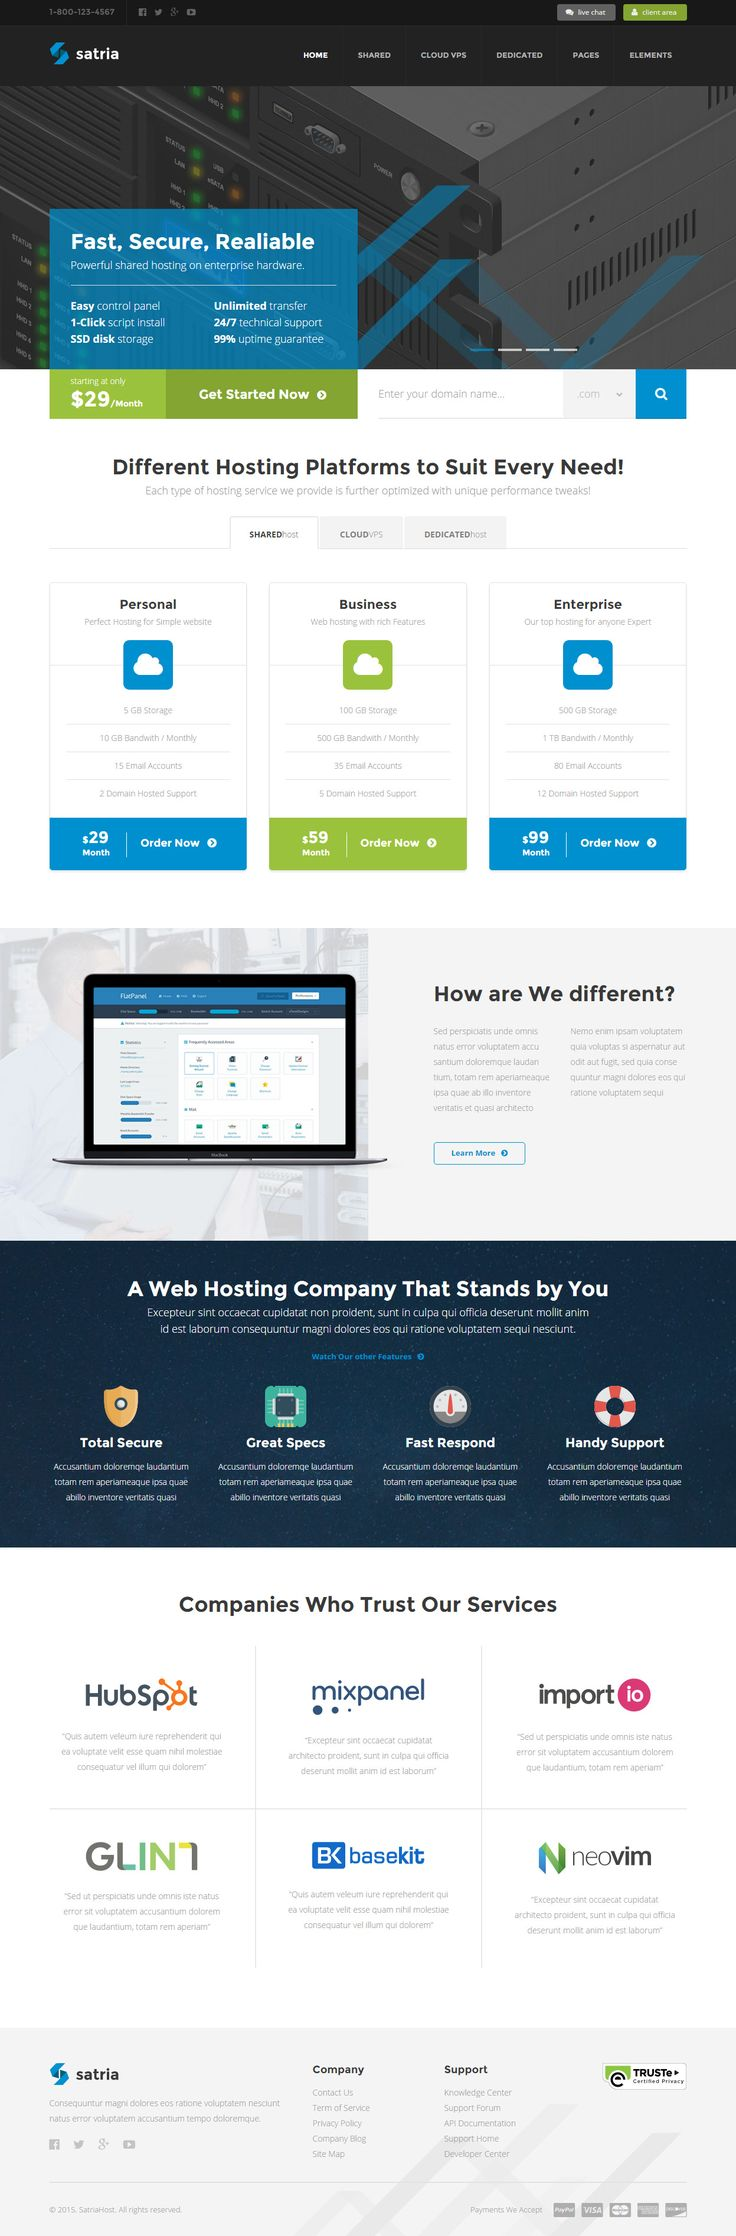 Satria is Premium full Responsive #HTML5 #Hosting #Template. Retina Ready. Minimal Design. Mega Menu. Contact Form. CSS files. Test free demo at: http://www.responsivemiracle.com/cms/satria-premium-responsive-professional-hosting-html5-template/